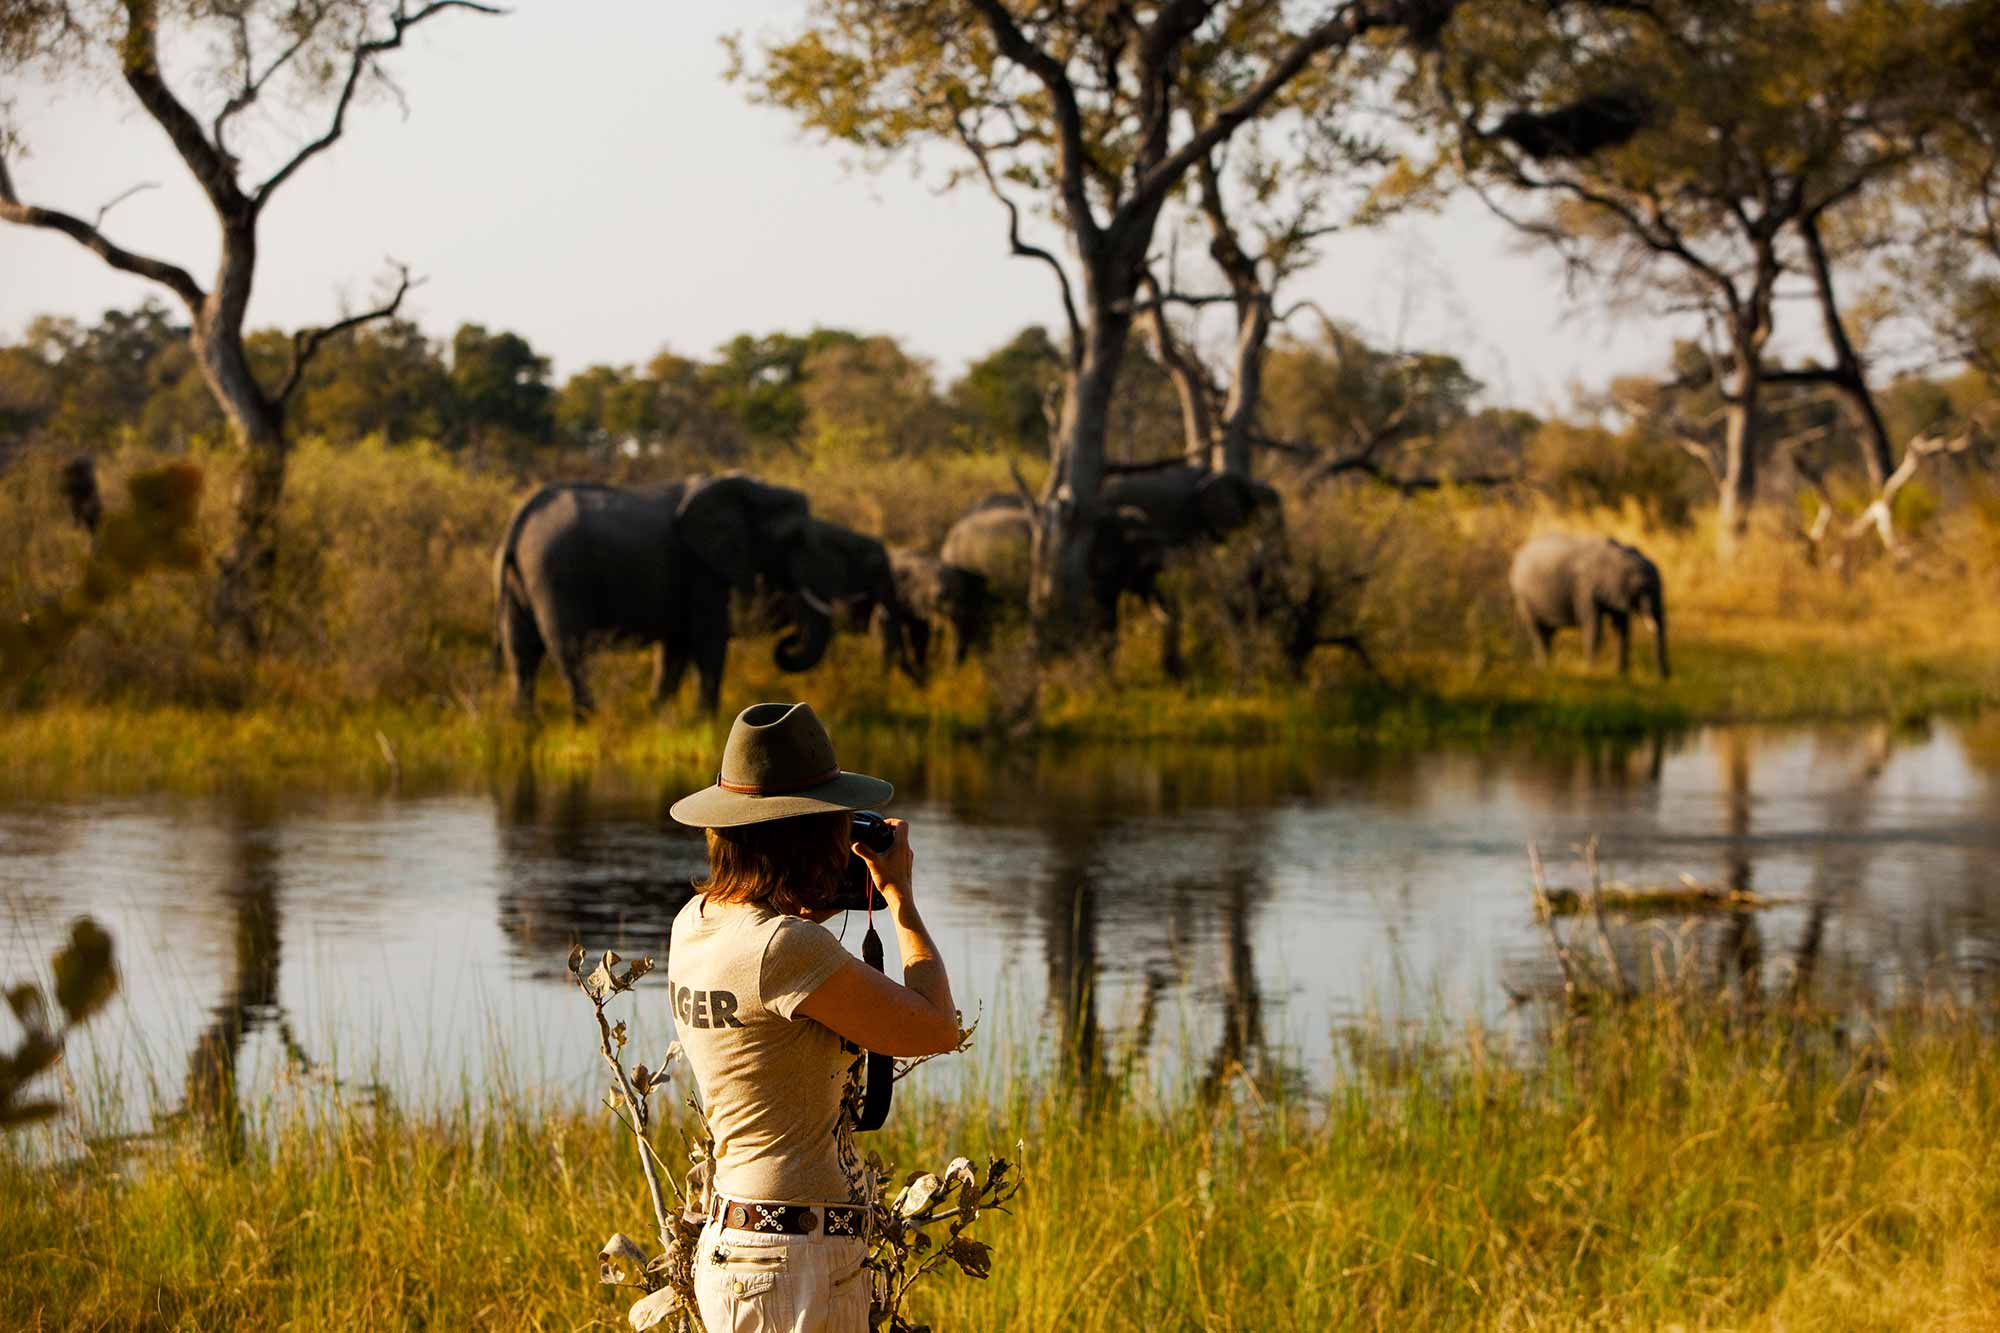 enkosi-africa-safari-botswana-selinda-explorers-camp-great-plains-conservation-game-drive-elephants